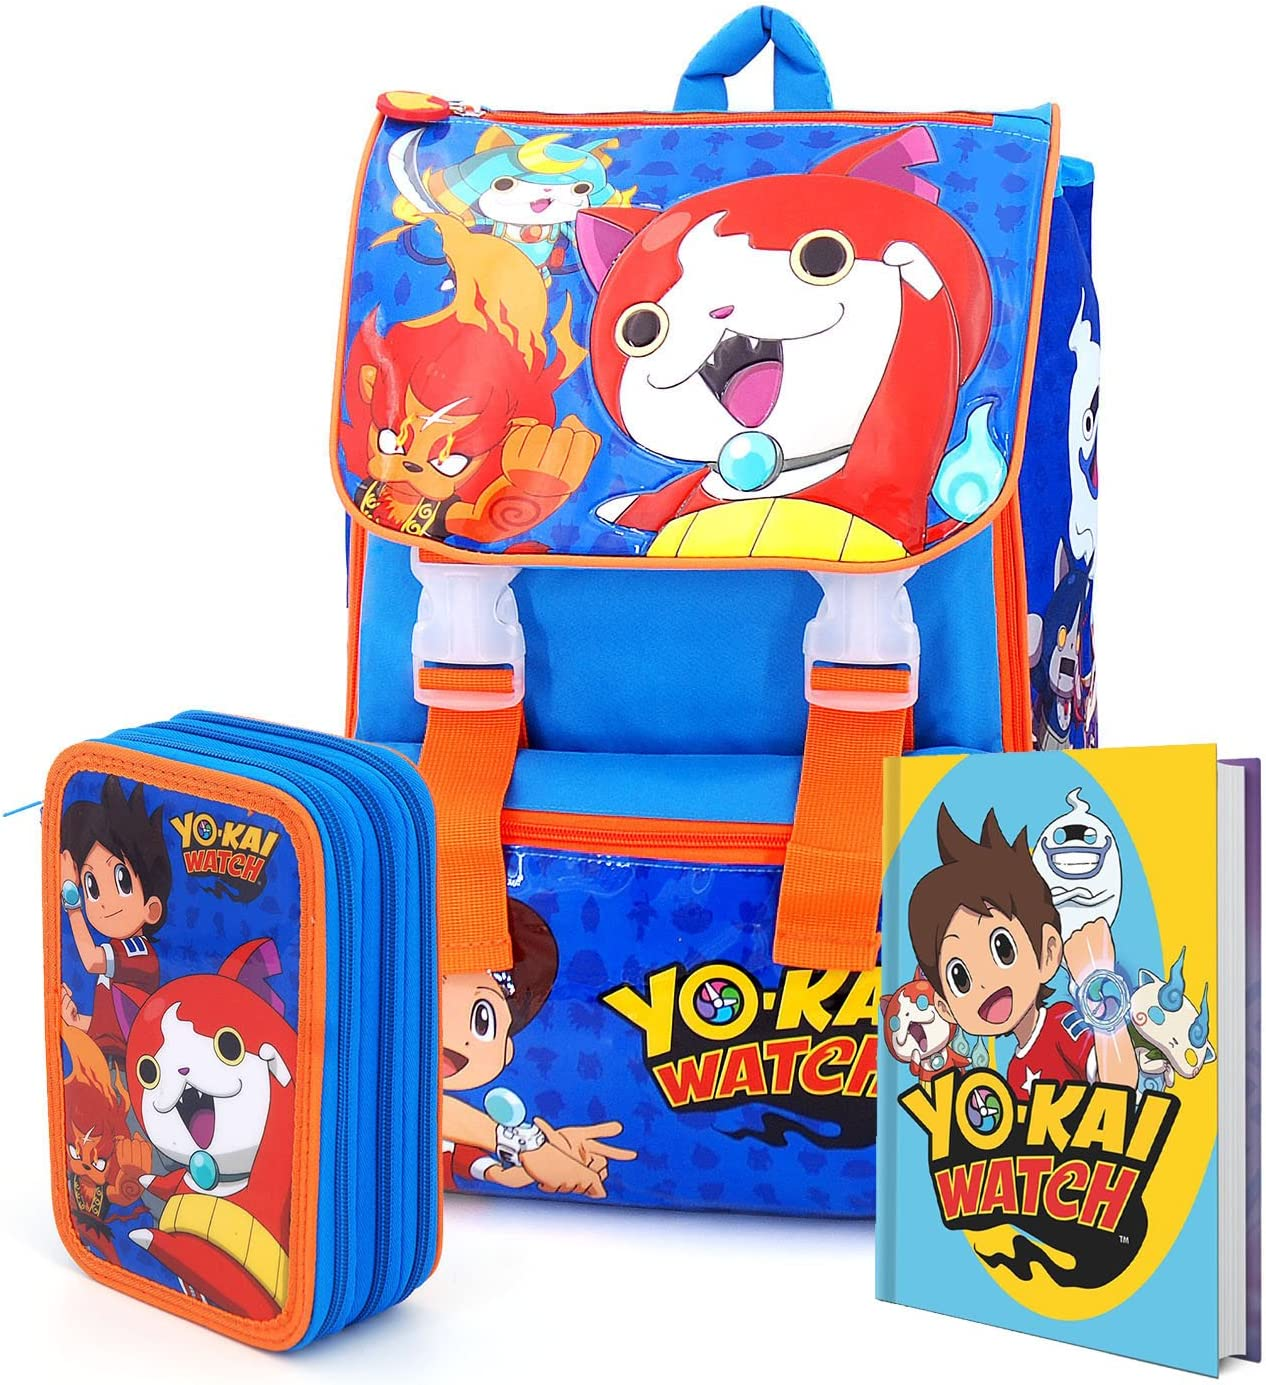 YO-KAI WATCH - Set de útiles escolares azul turquesa: Amazon.es: Equipaje